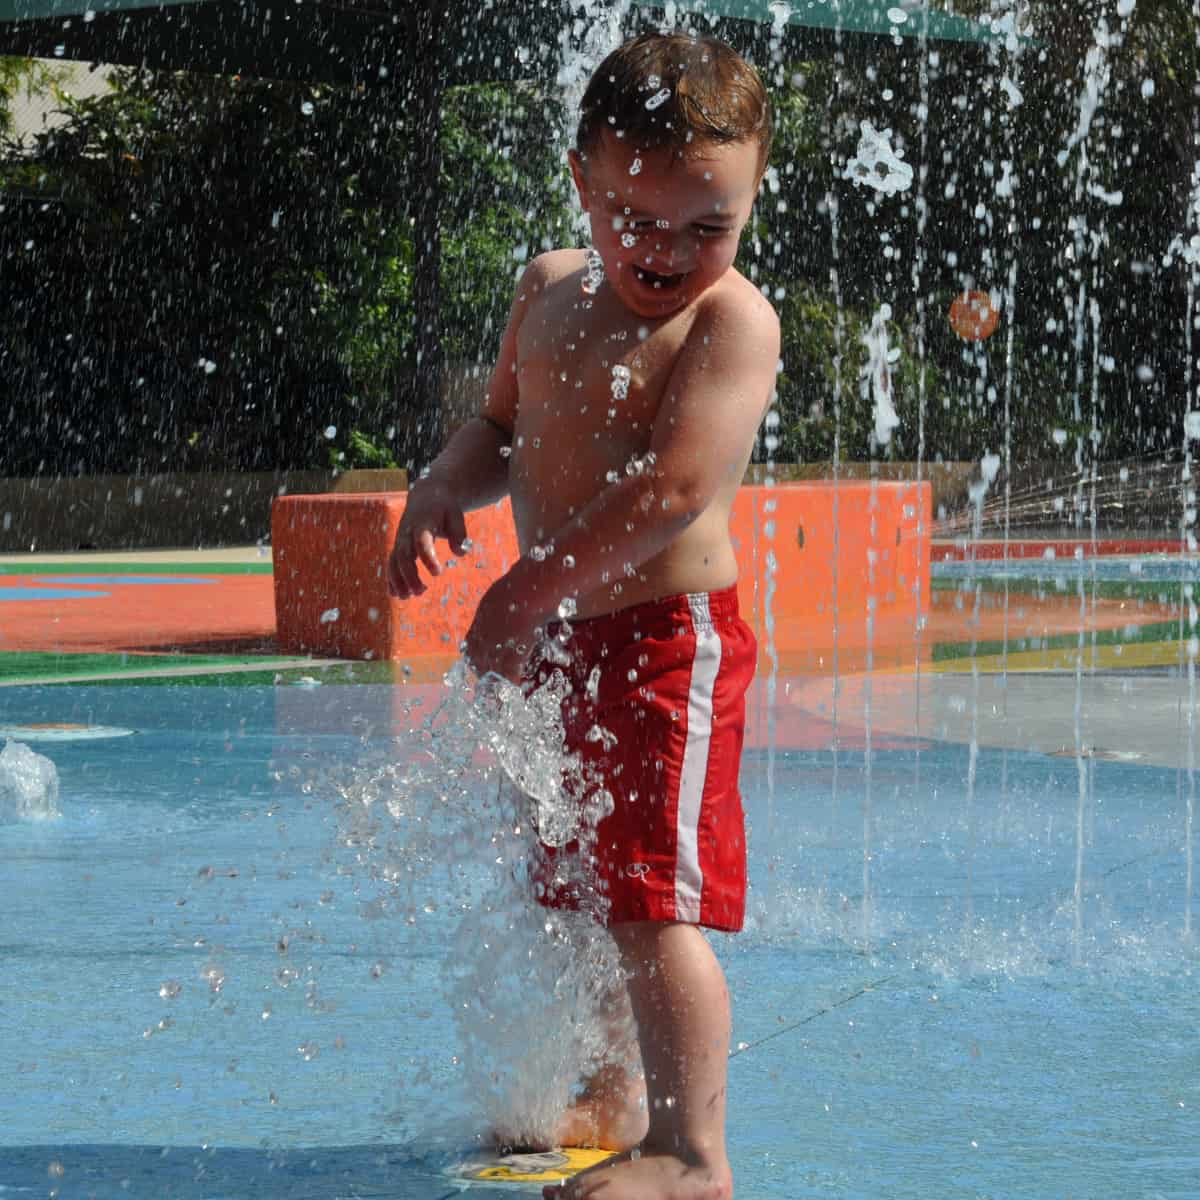 Playing in Splashpad